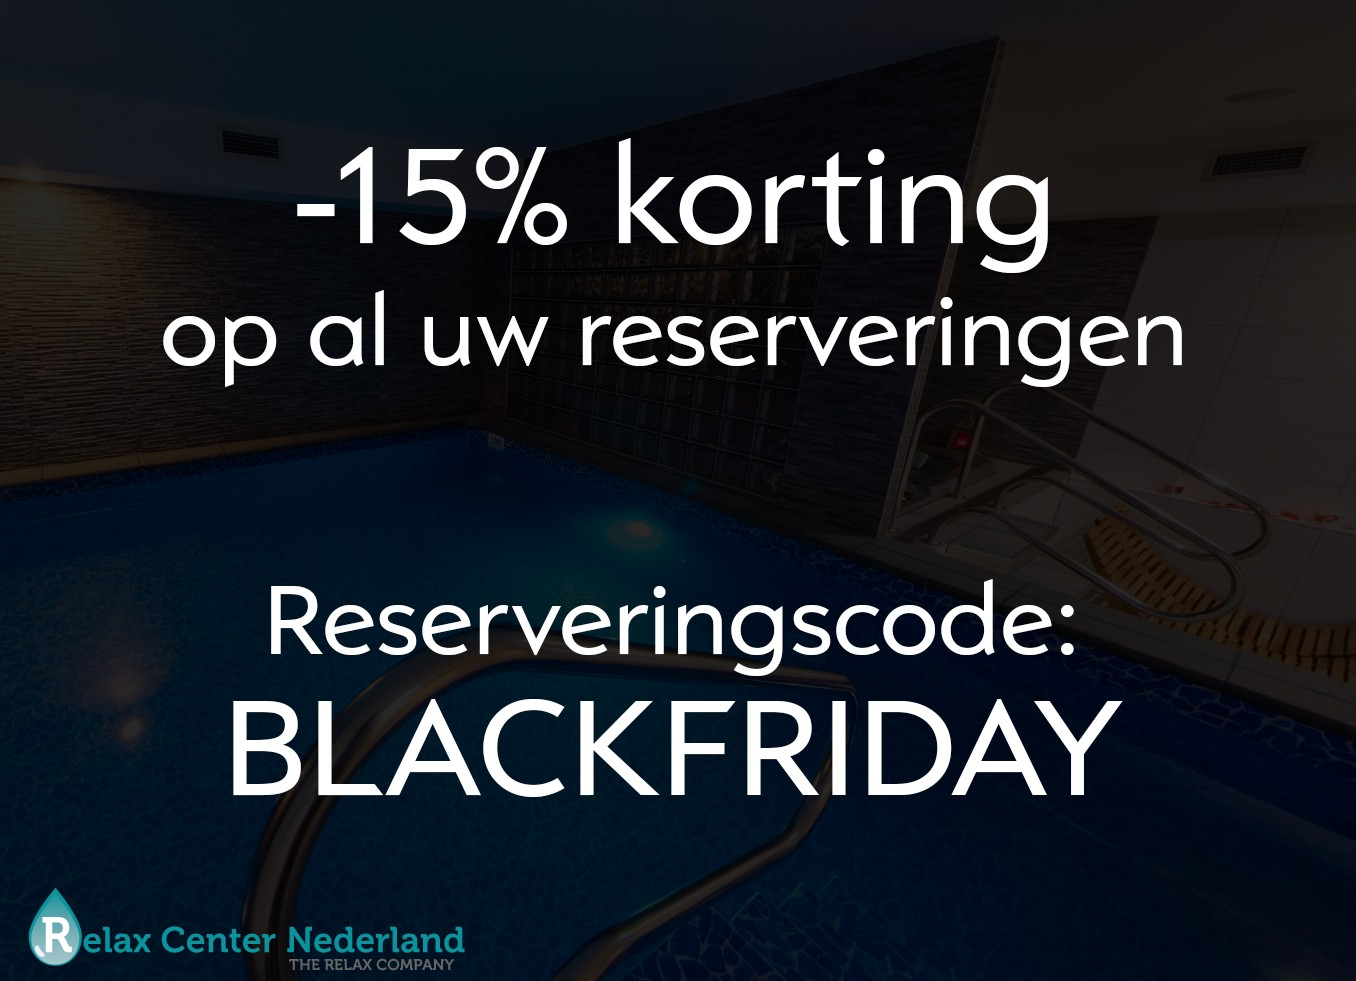 black friday relax center nederland